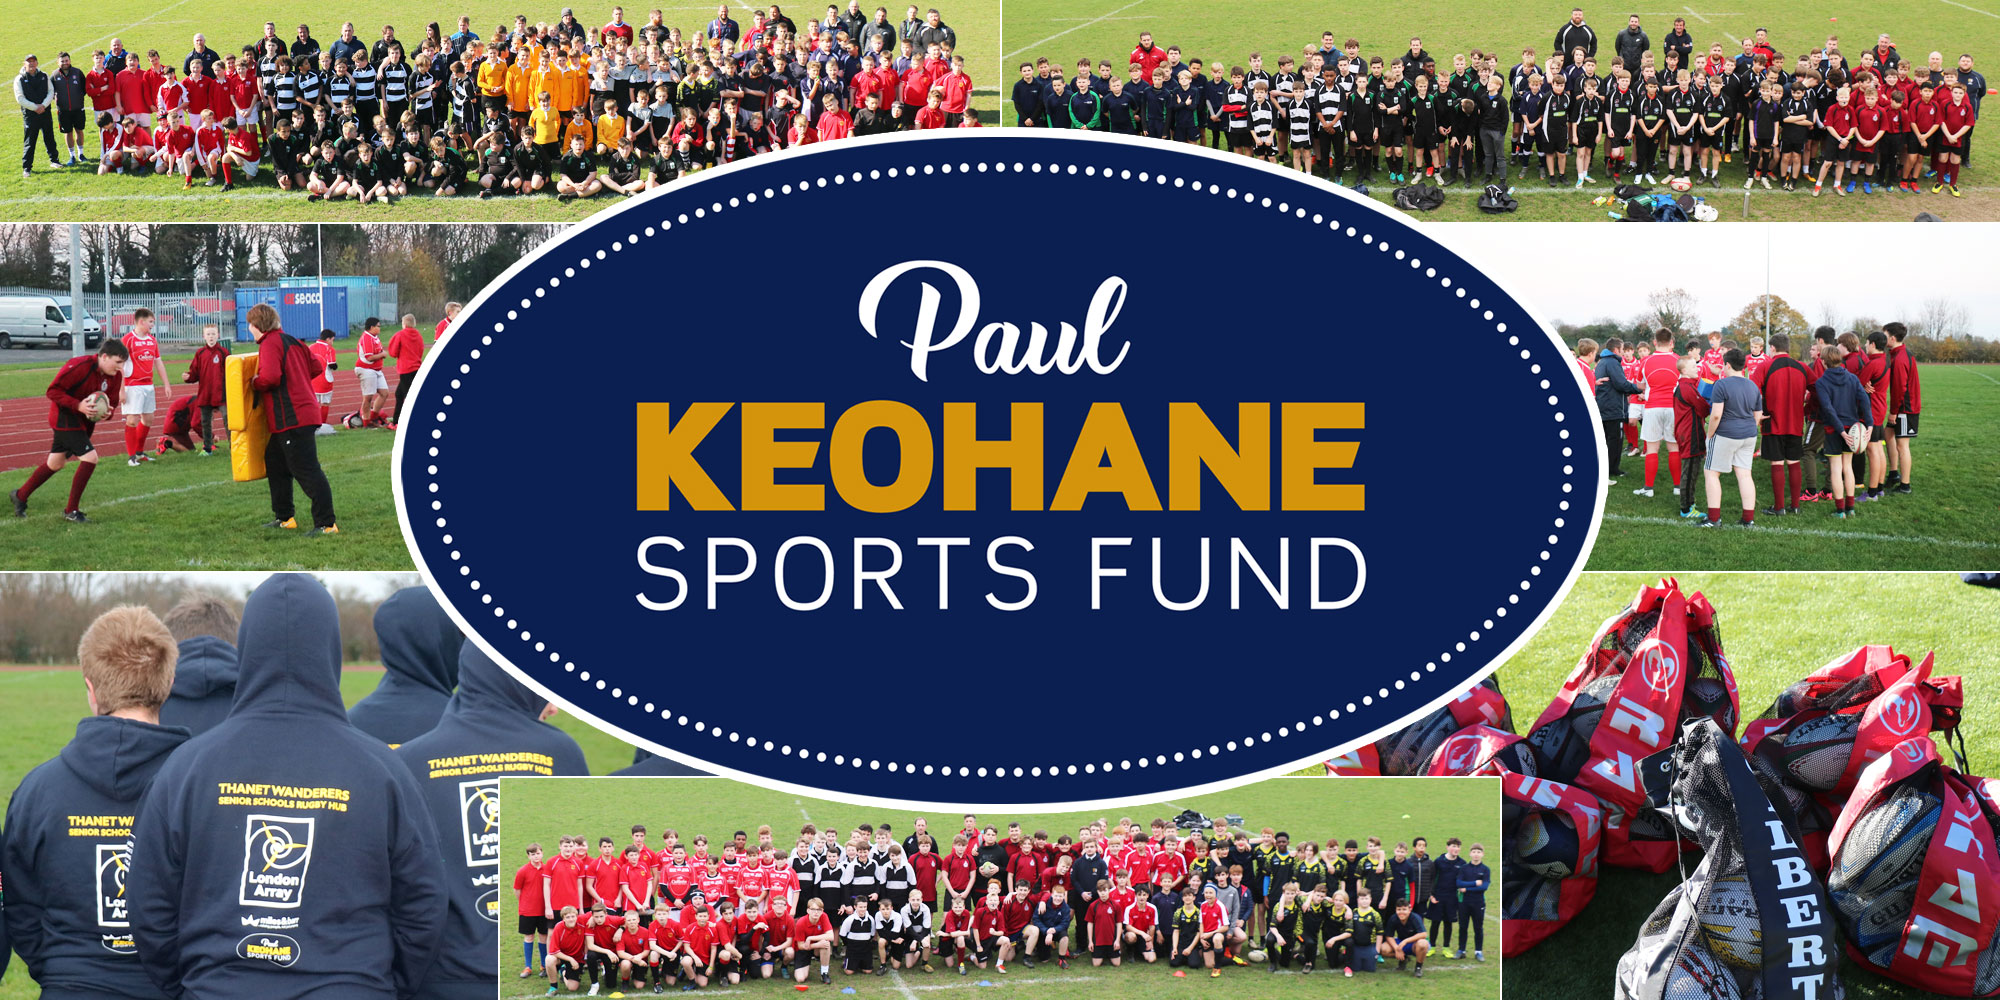 Image for the Paul Keohane Sports Fund Website news article